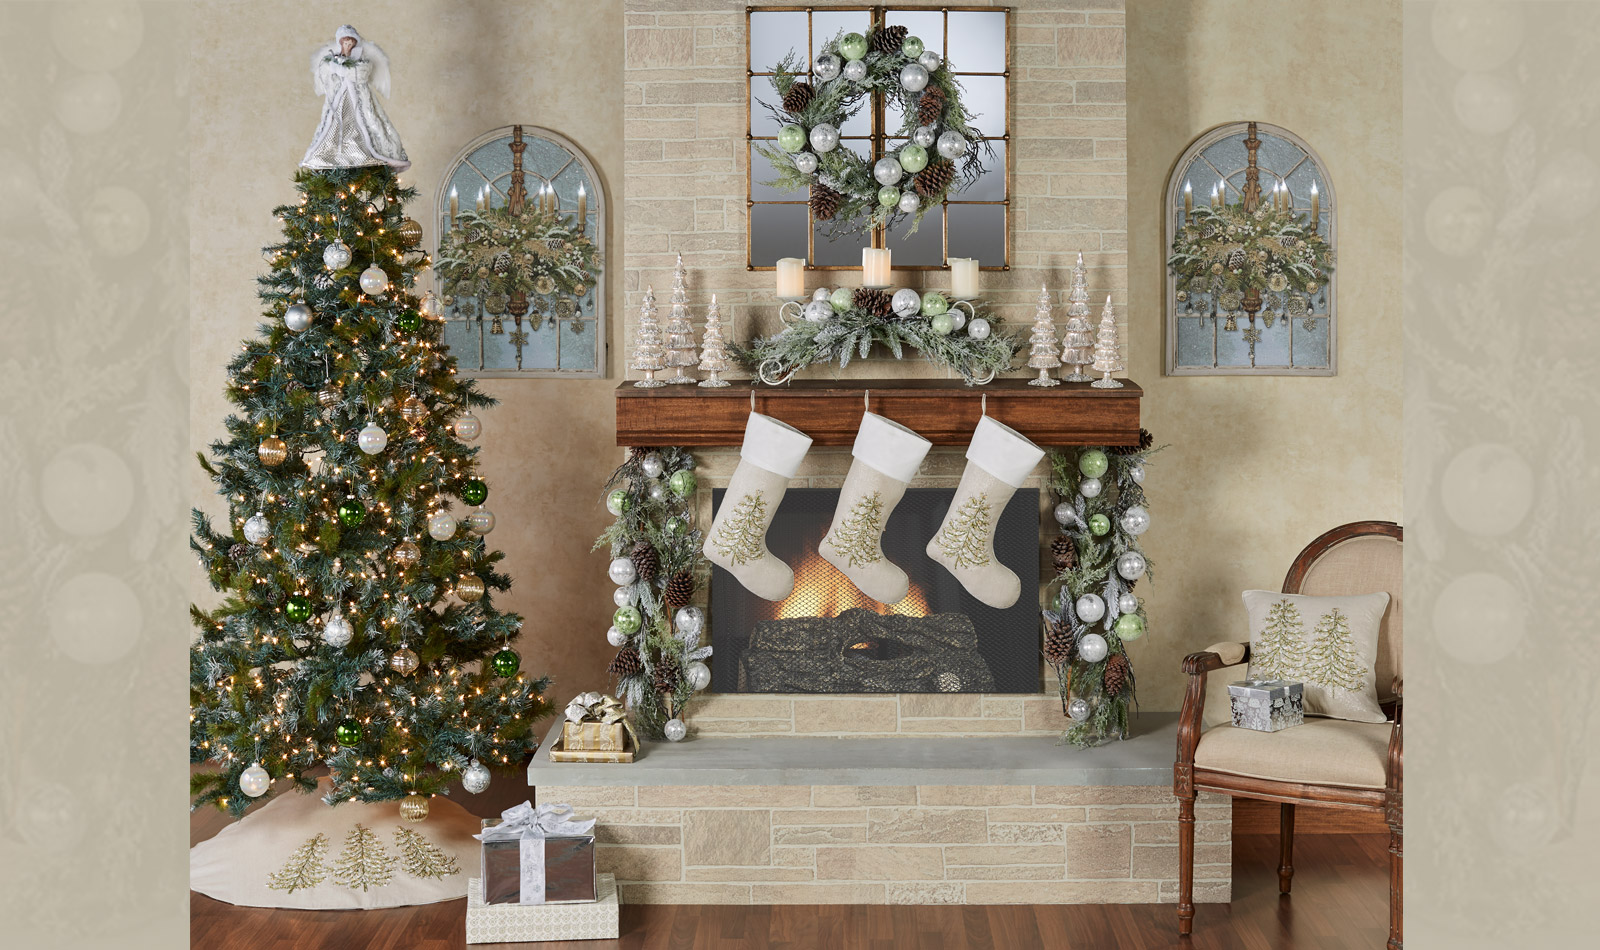 Get The Look - Winter Botanicals Fireplace